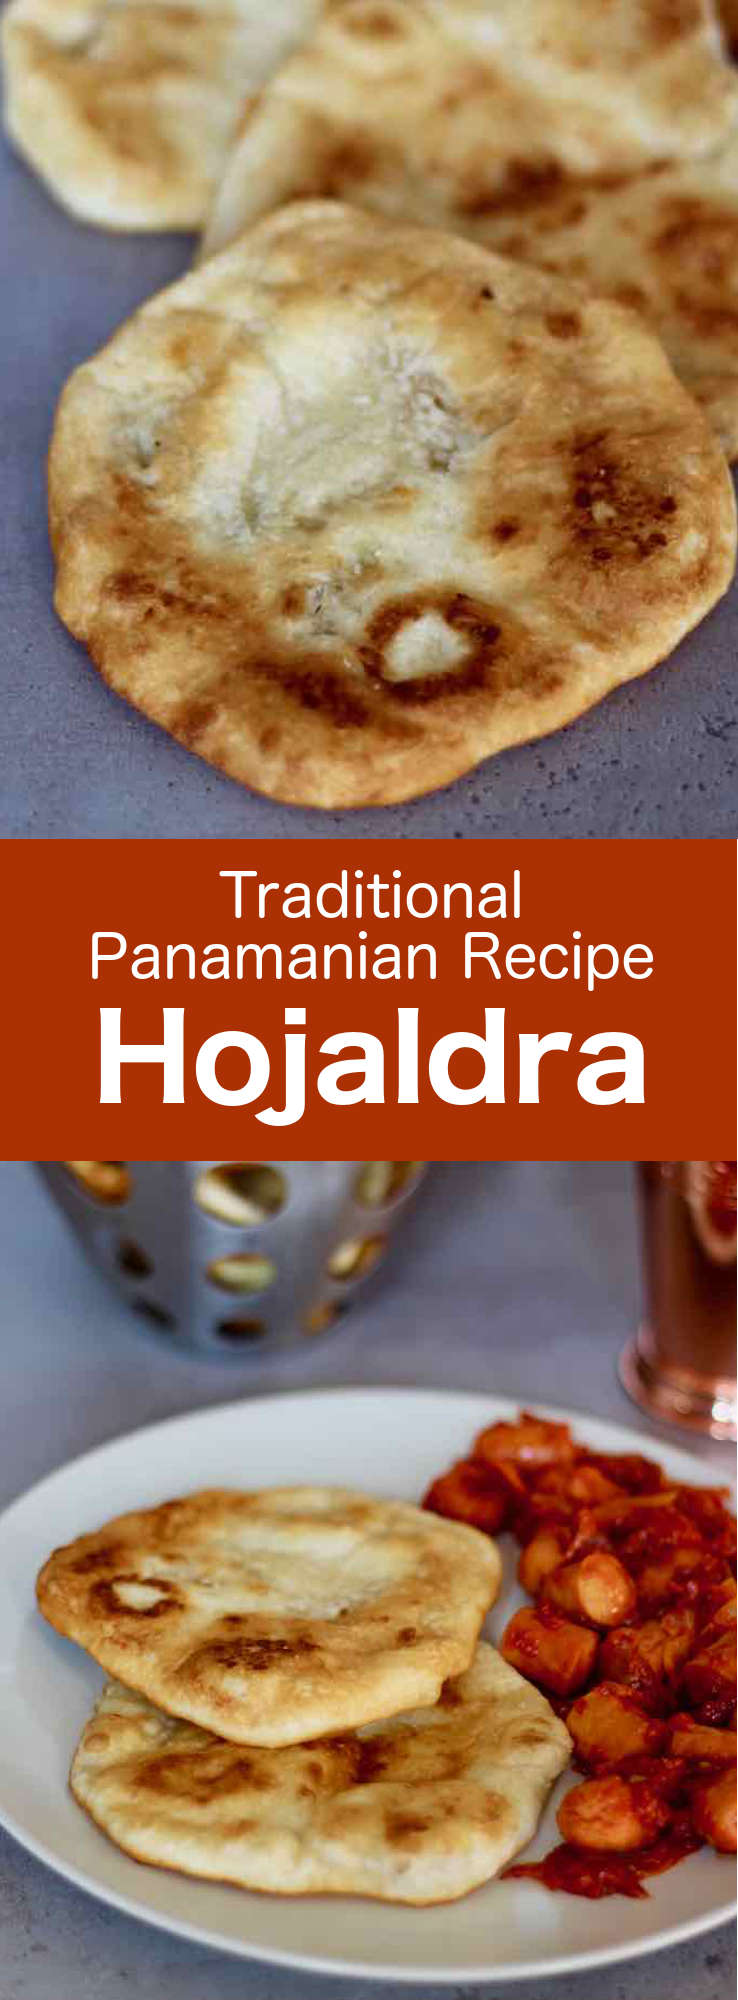 Hojaldres, also known as hojaldras or hojaldas, are delicious Panamanian traditional round fried flat rolls that are also popular in Uruguay and Colombia. #Panama #CentralAmericanCuisine #CentralAmericanRecipe #PanamaCuisine #PanamaRecipe #WorldCuisine #196flavors